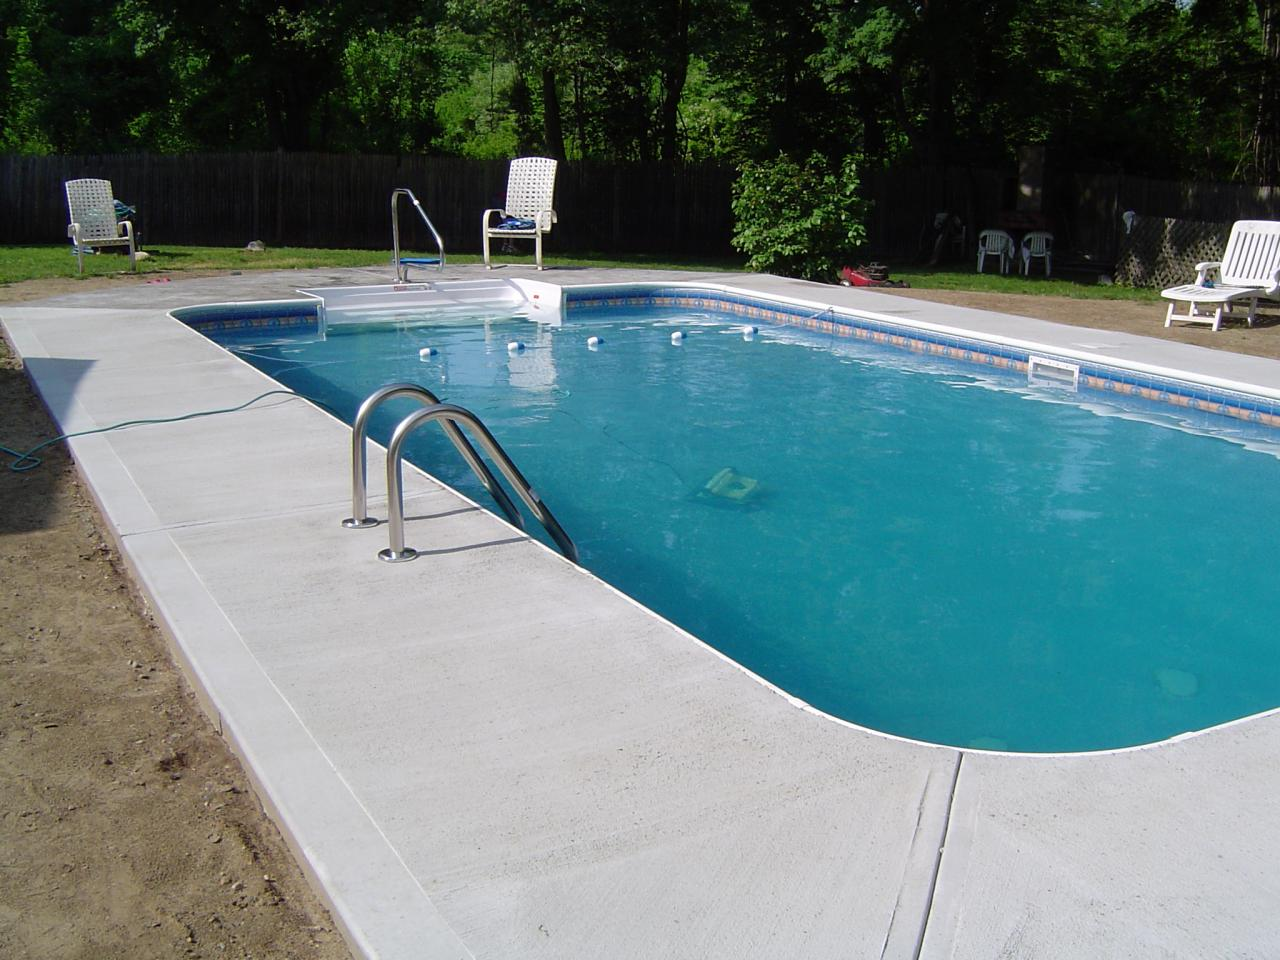 pool concrete company pool decking concrete contractor pool concrete. Black Bedroom Furniture Sets. Home Design Ideas